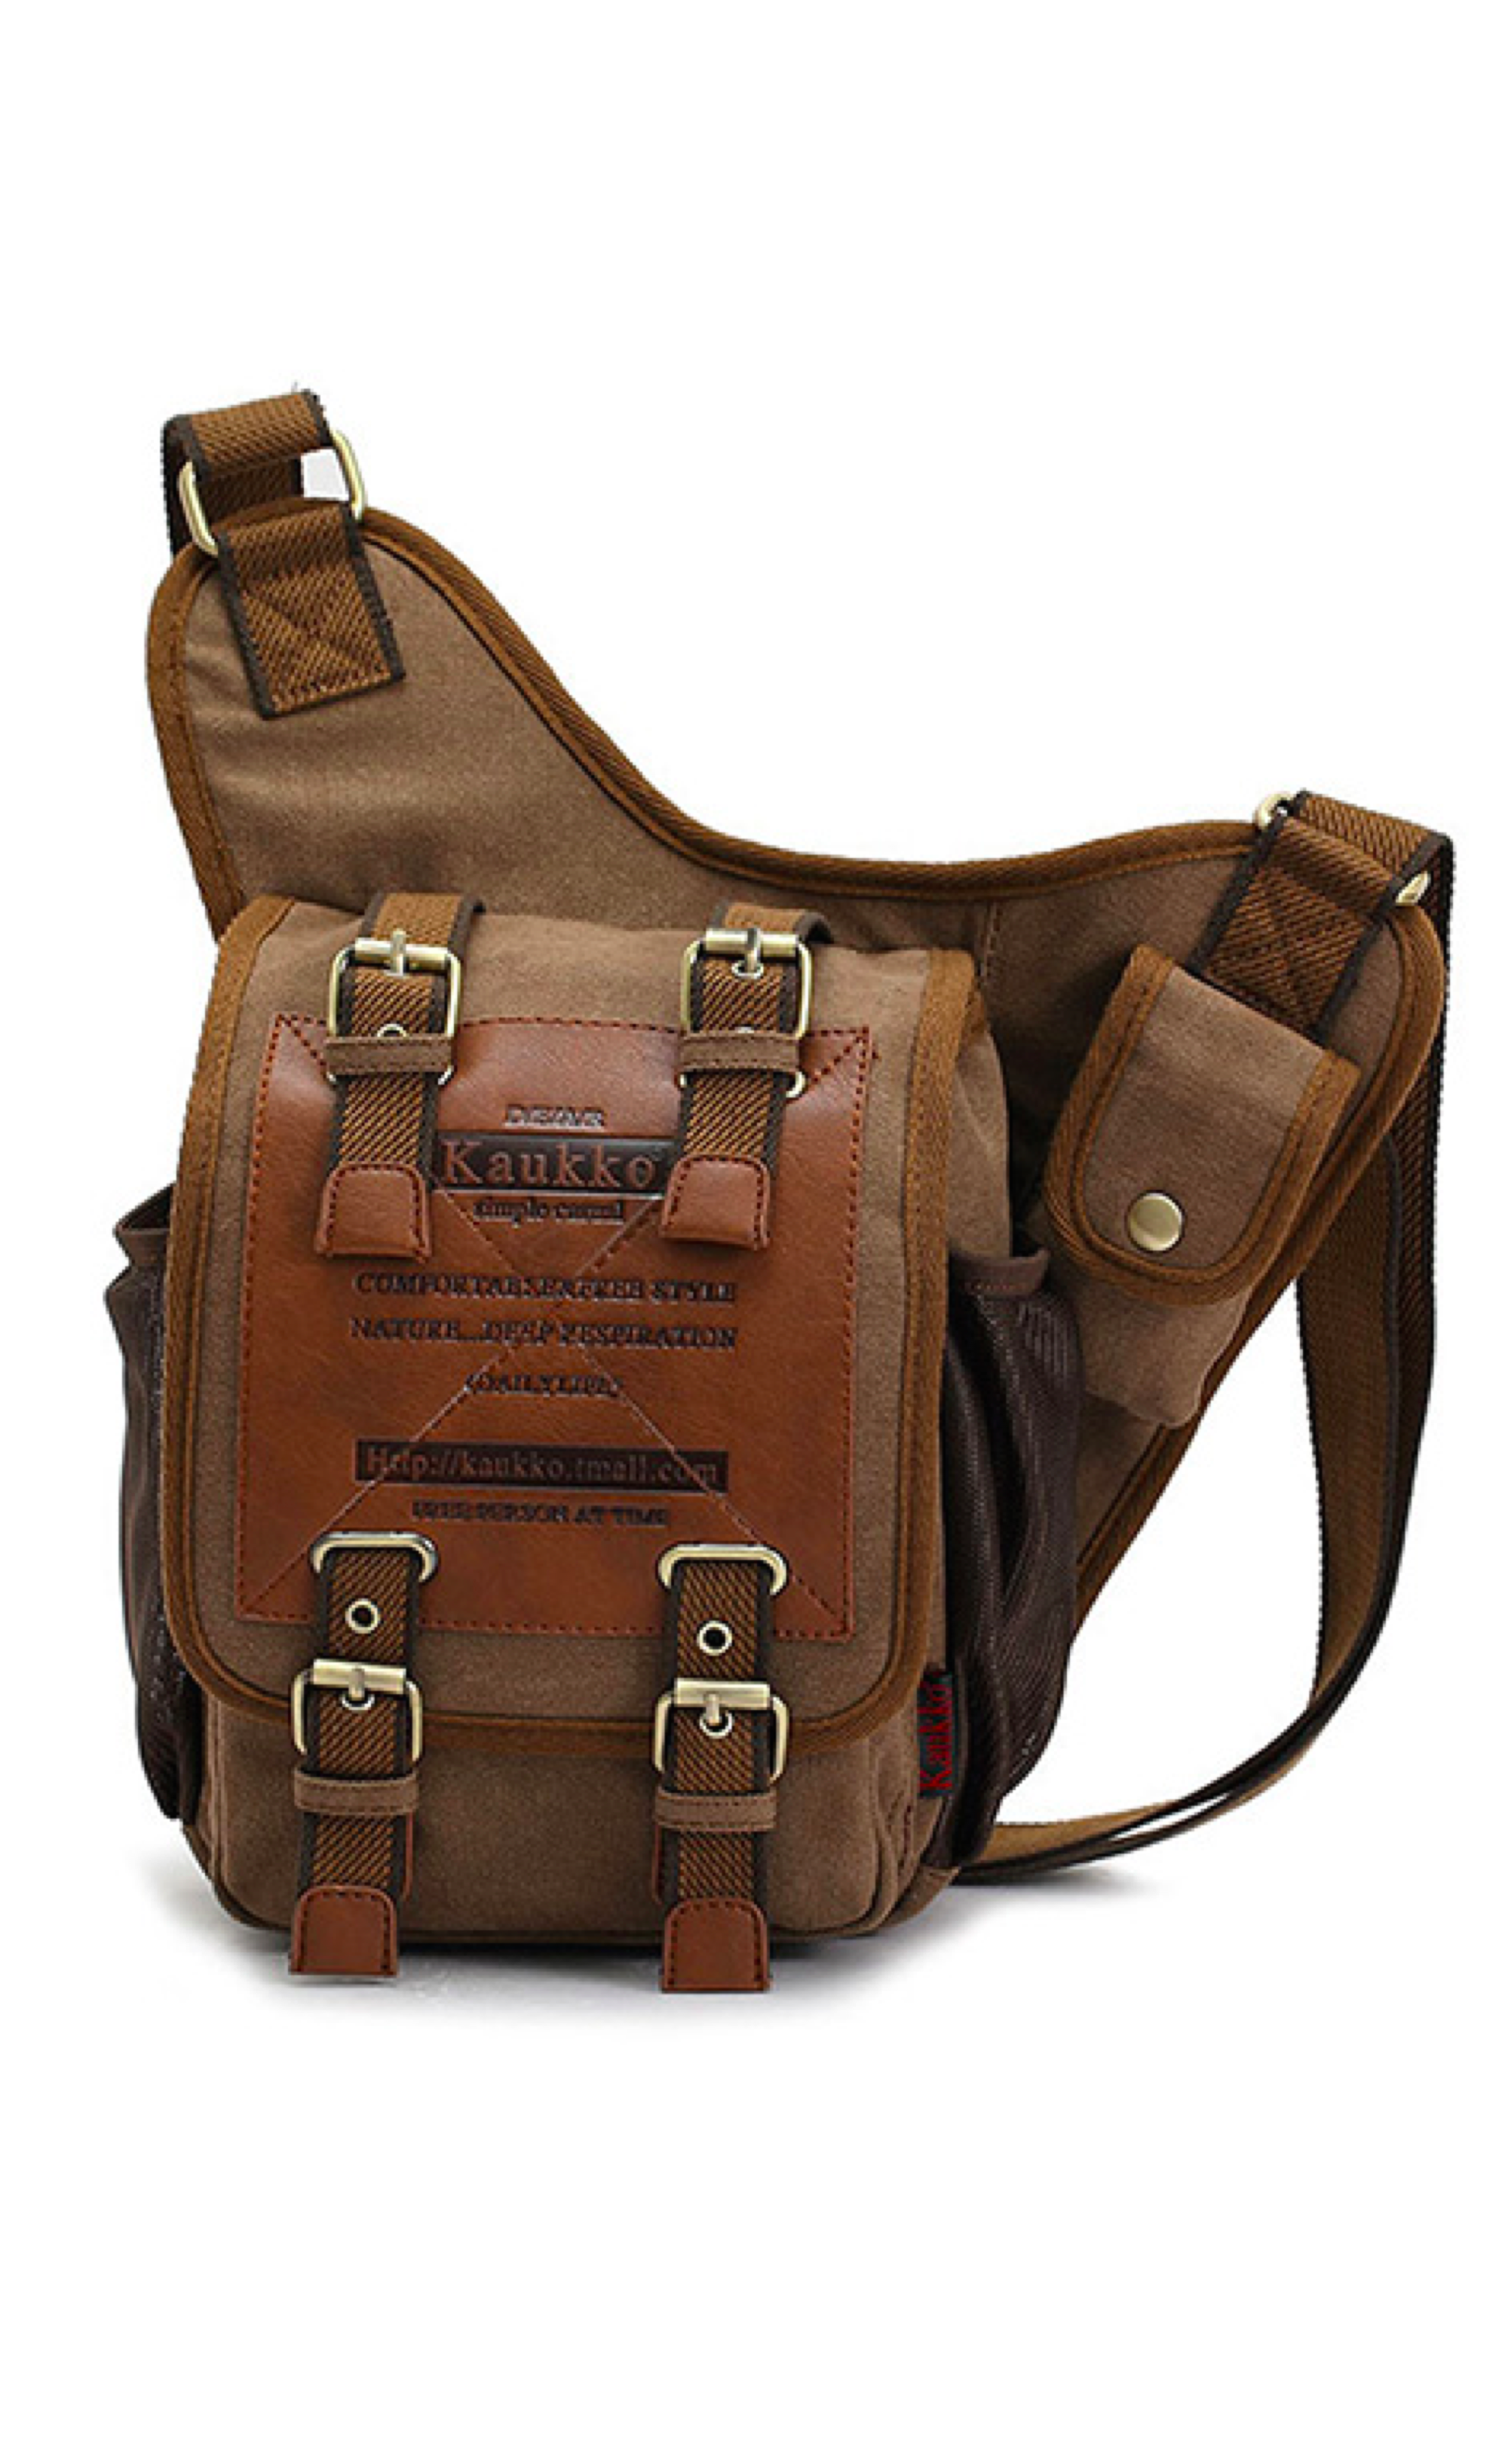 f838541d9e32 This men s vintage canvas military crossbody messenger bag has a  military-inspired design and features multiple compartments and pockets for  carrying ...